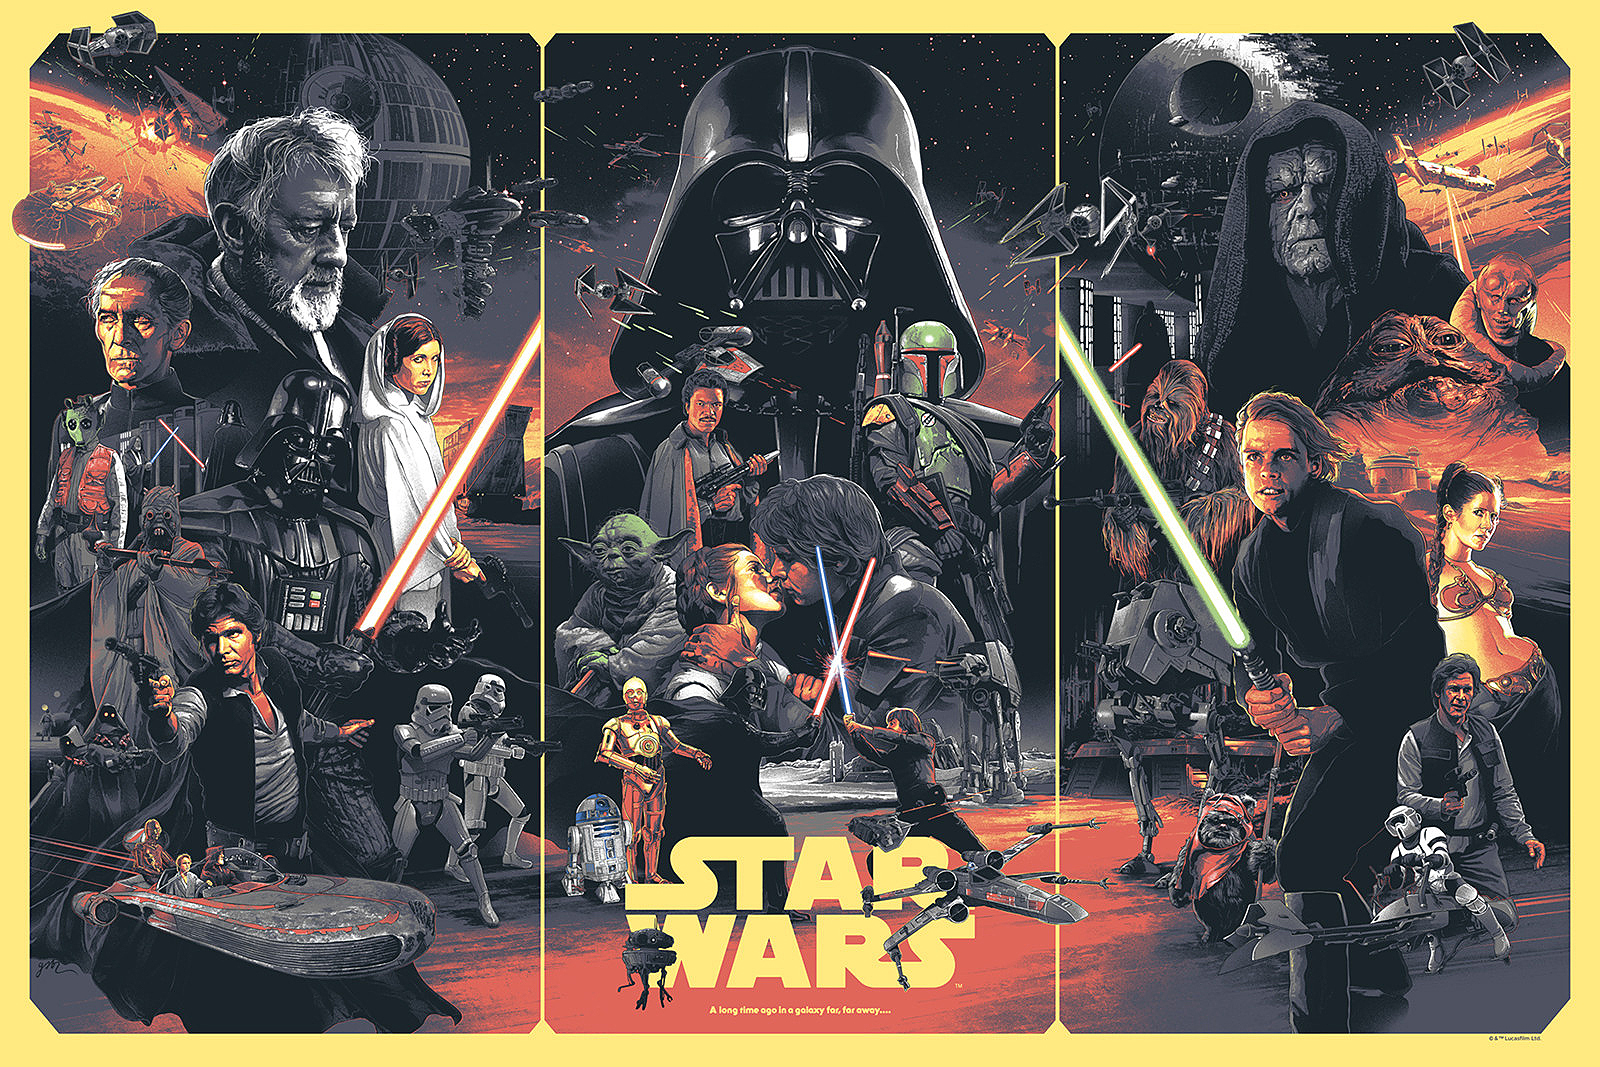 one of star wars one of doom short story 15092016 facebook page:   yoda: a star wars story  - rogue one a star wars story trailer music - rework version.